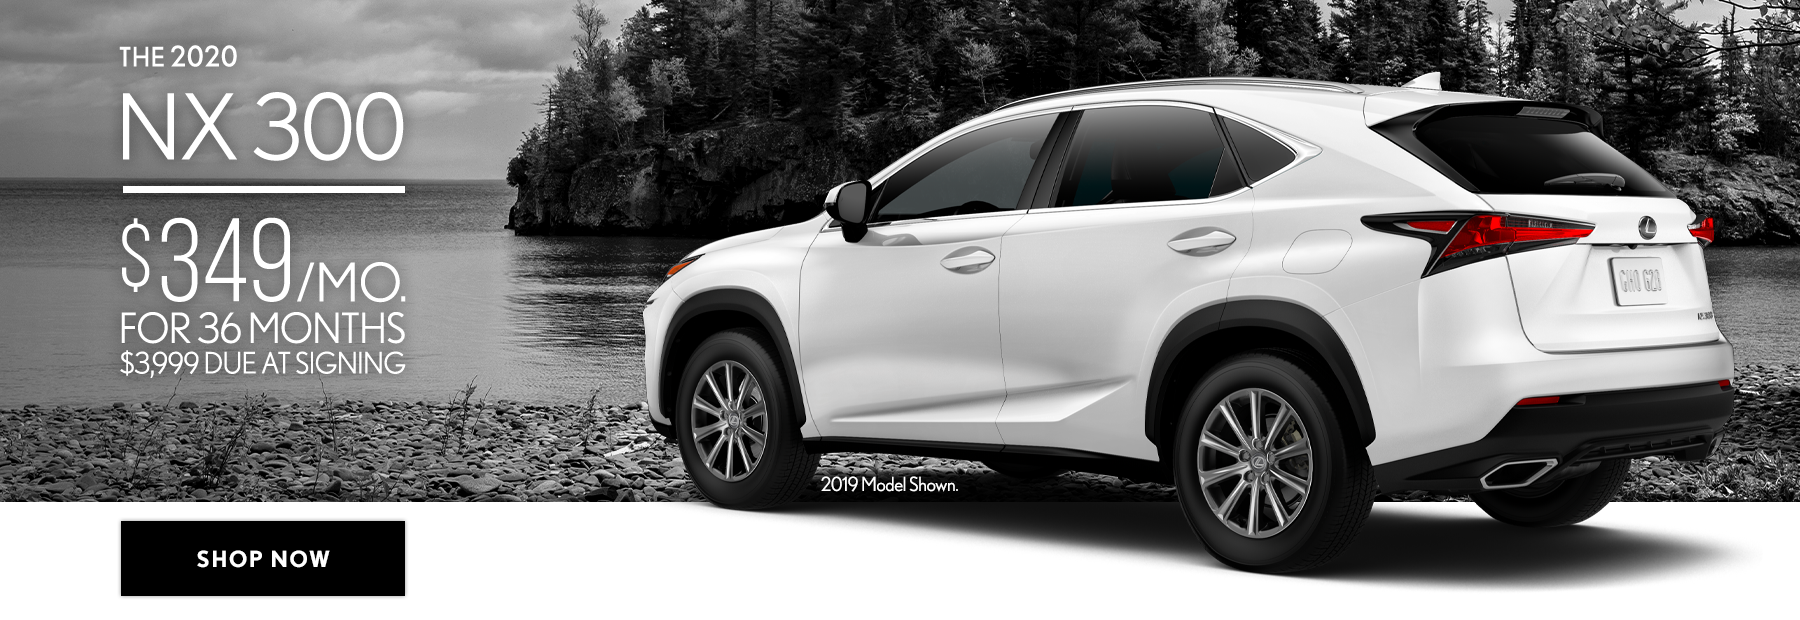 lease-special-new-2020-lexus-nx-300-cincinnati-ohio